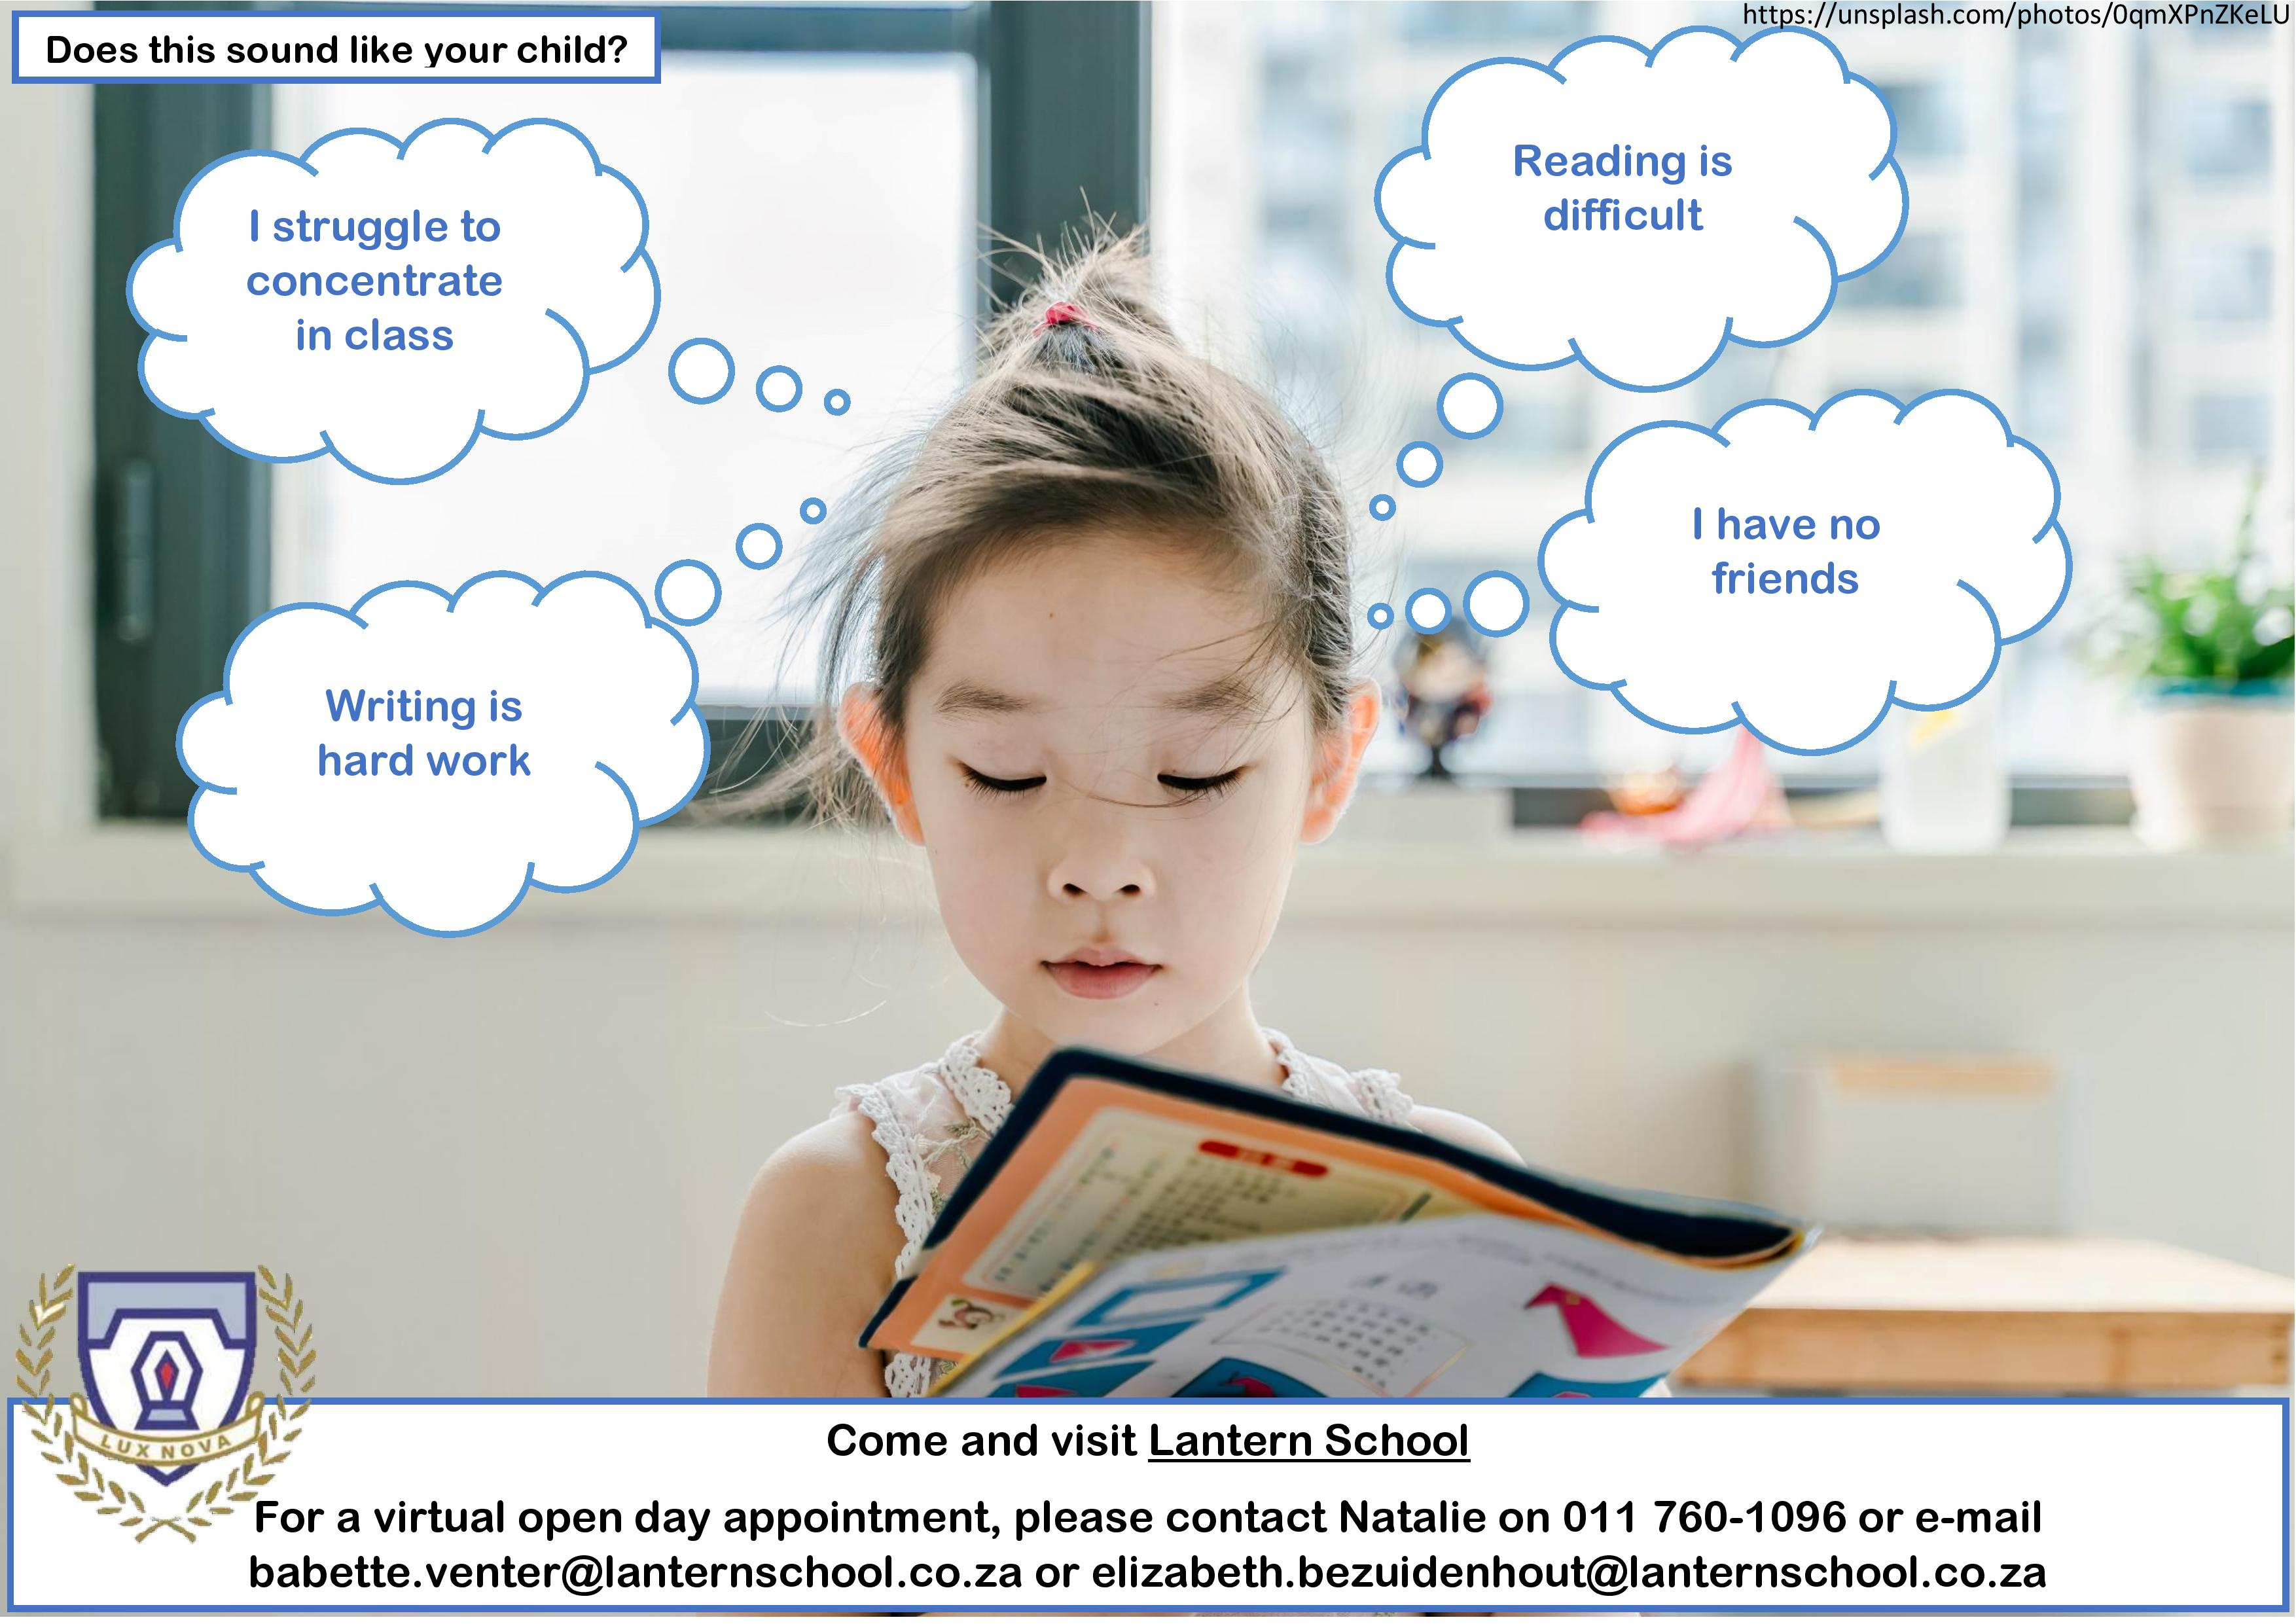 For a virtual open day appointment, please contact Natalie on 011 760 1096 or email babette.venter@lanternschool.co.za or elizabeth.bezuidenhout@lanternschool.co.za